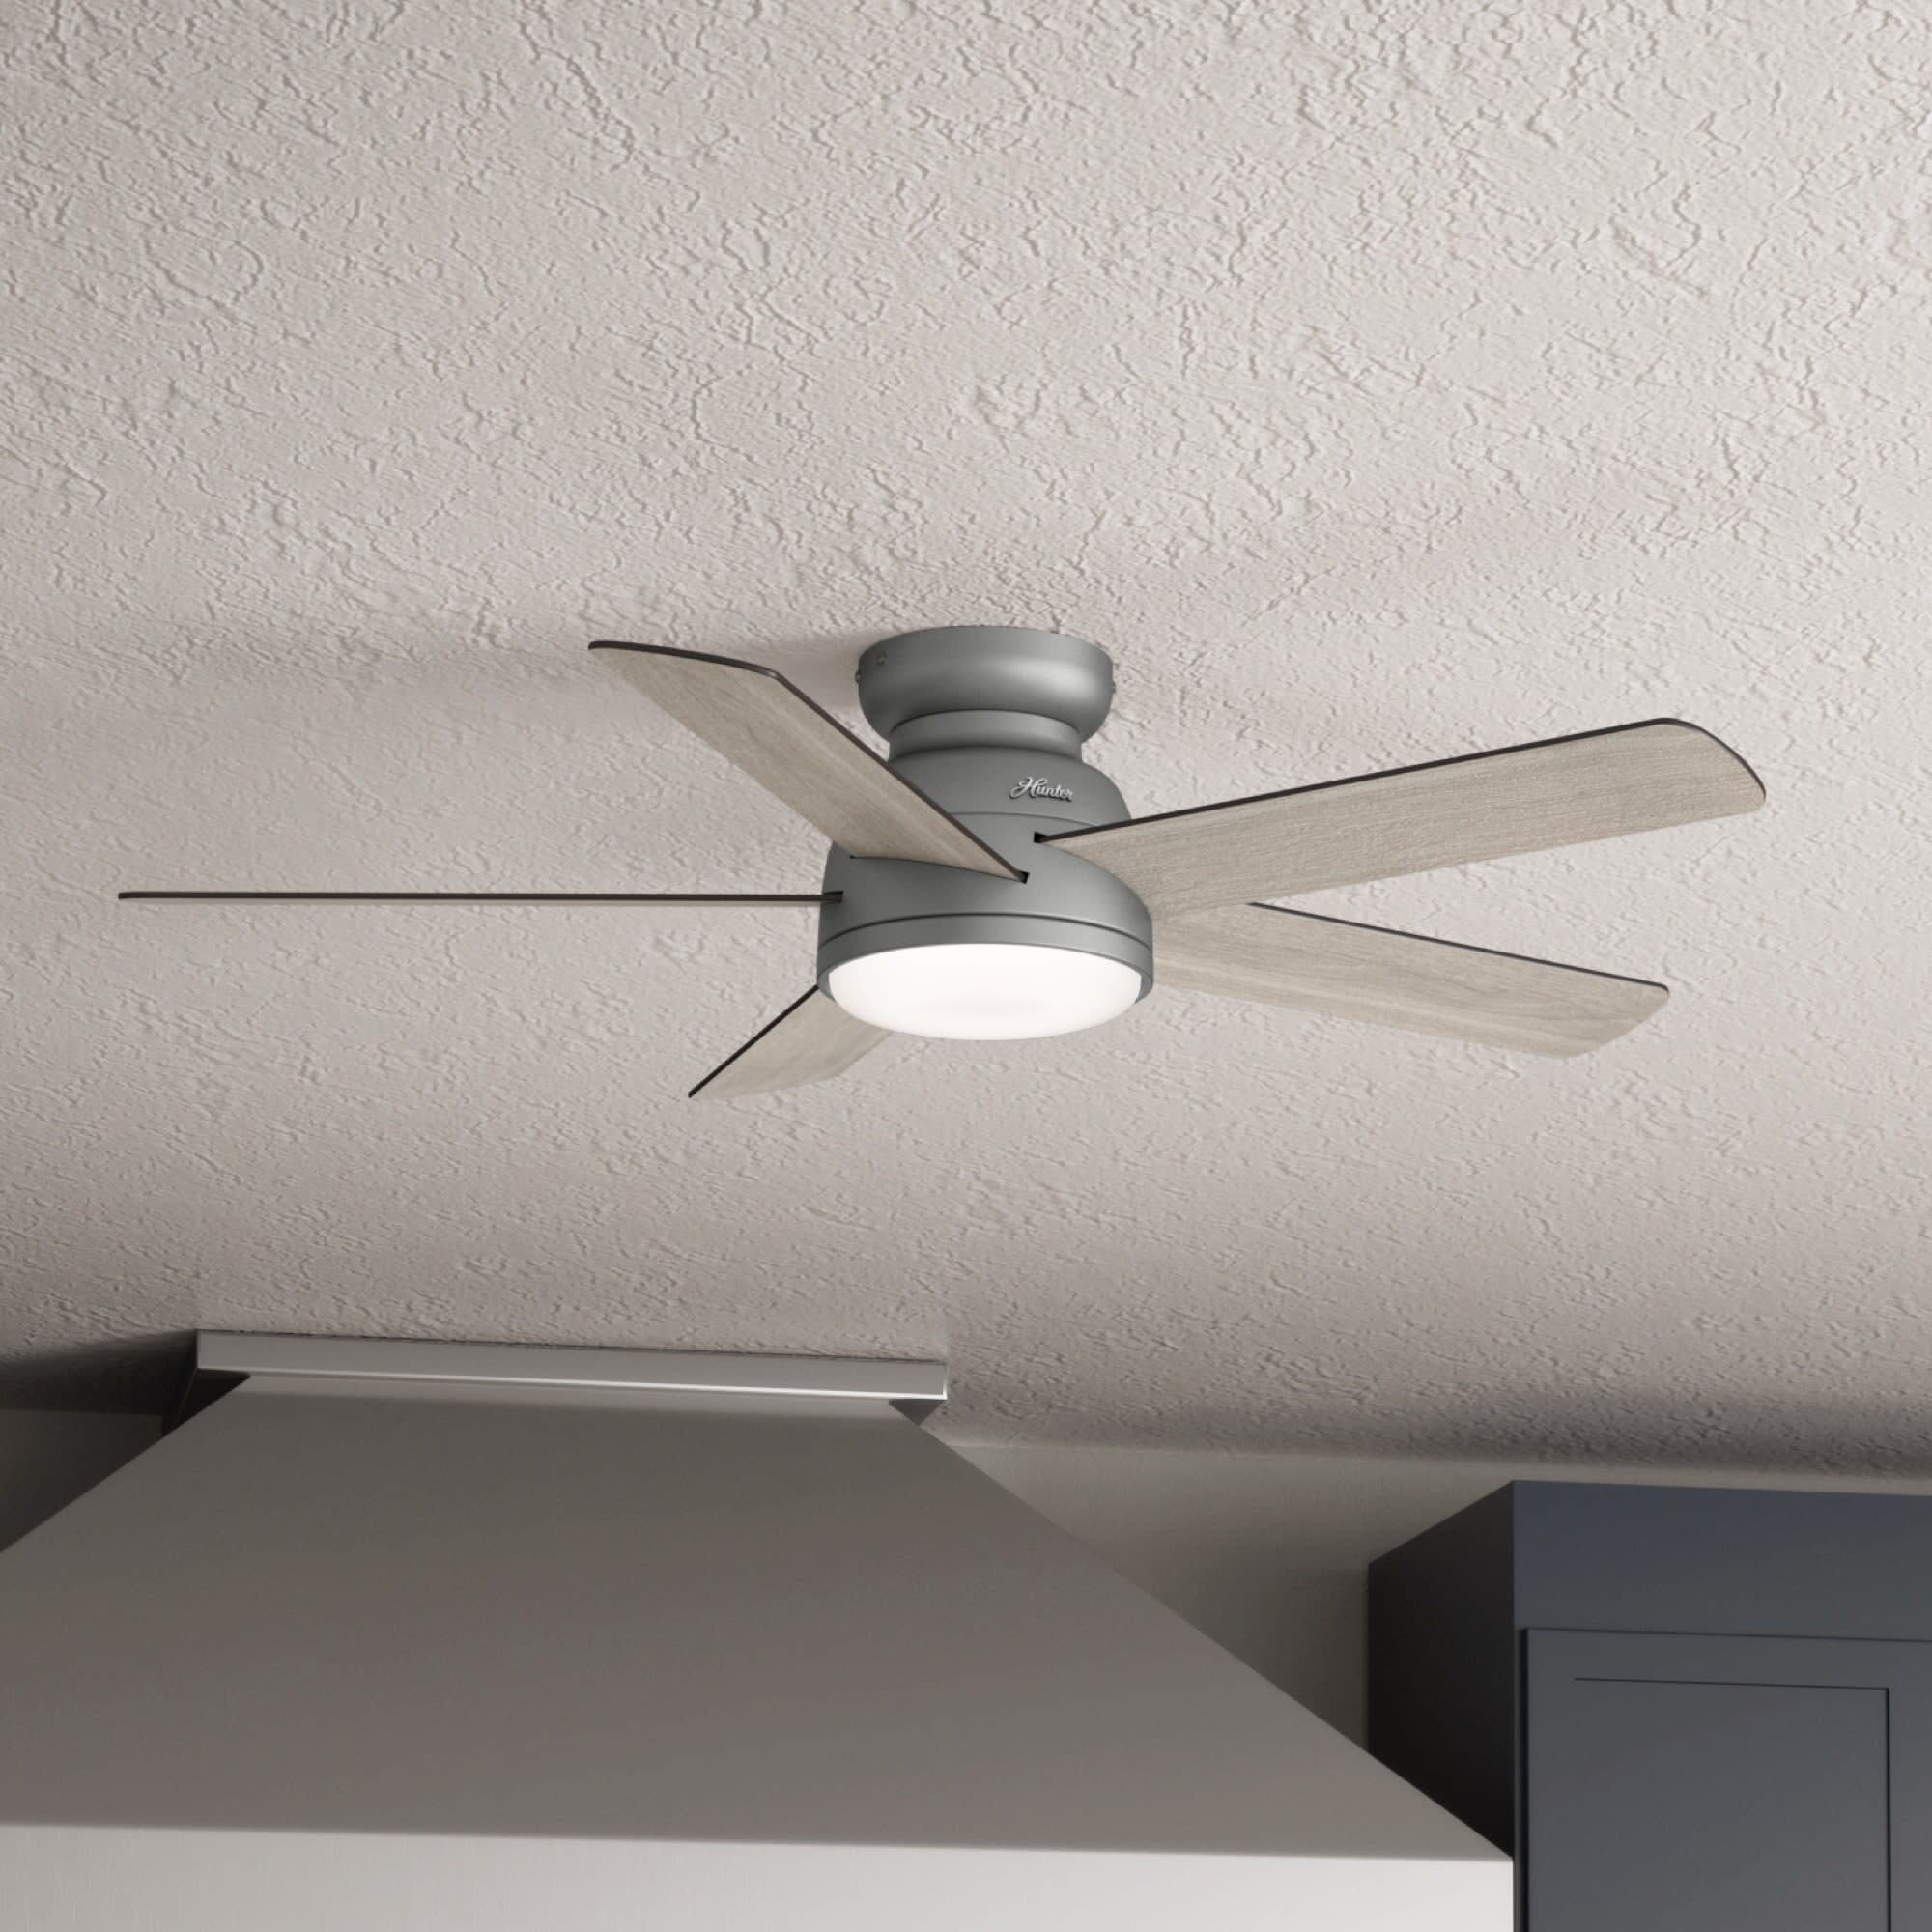 """11"""" Romulus 11 - Blade LED Smart Flush Mount Ceiling Fan with Remote Control  and Light Kit Included"""